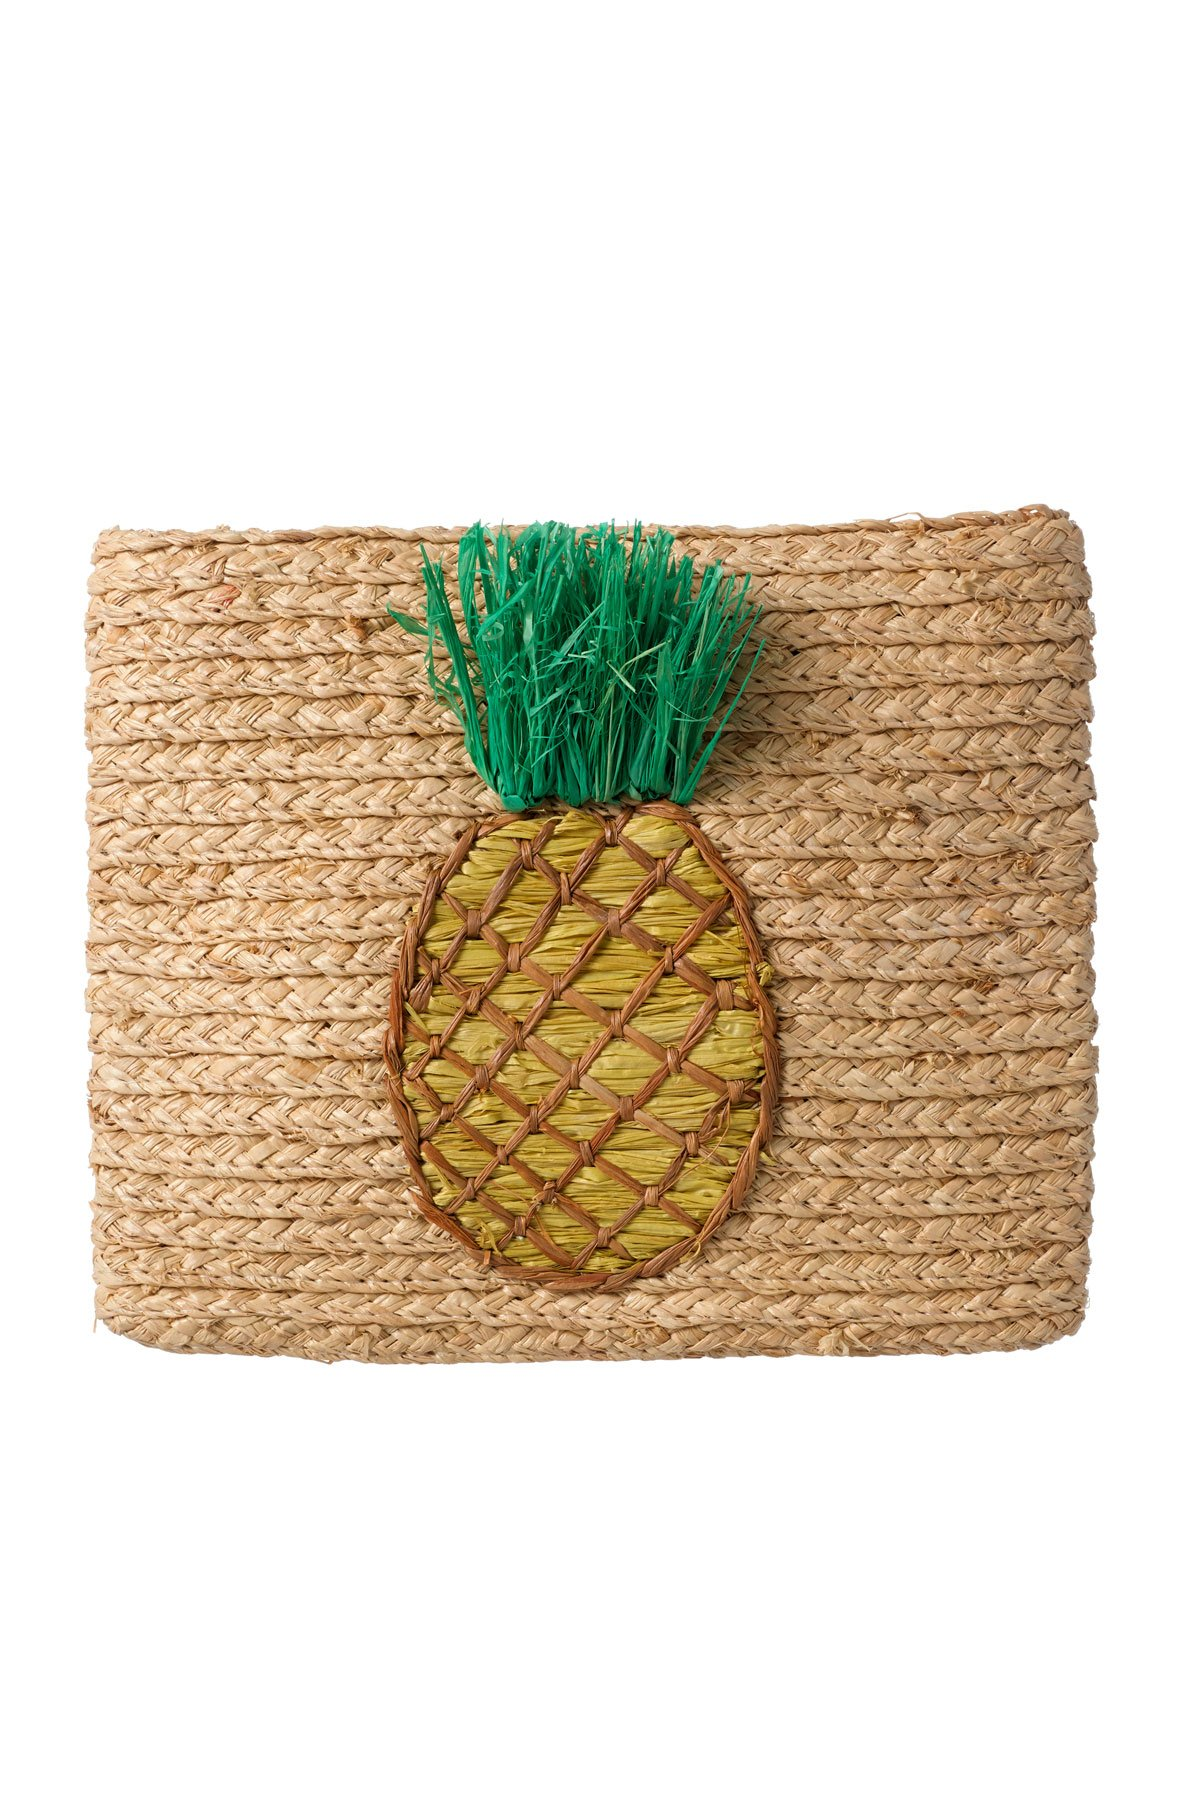 Whimsical Pineapple Woven Clutch - Natural 1